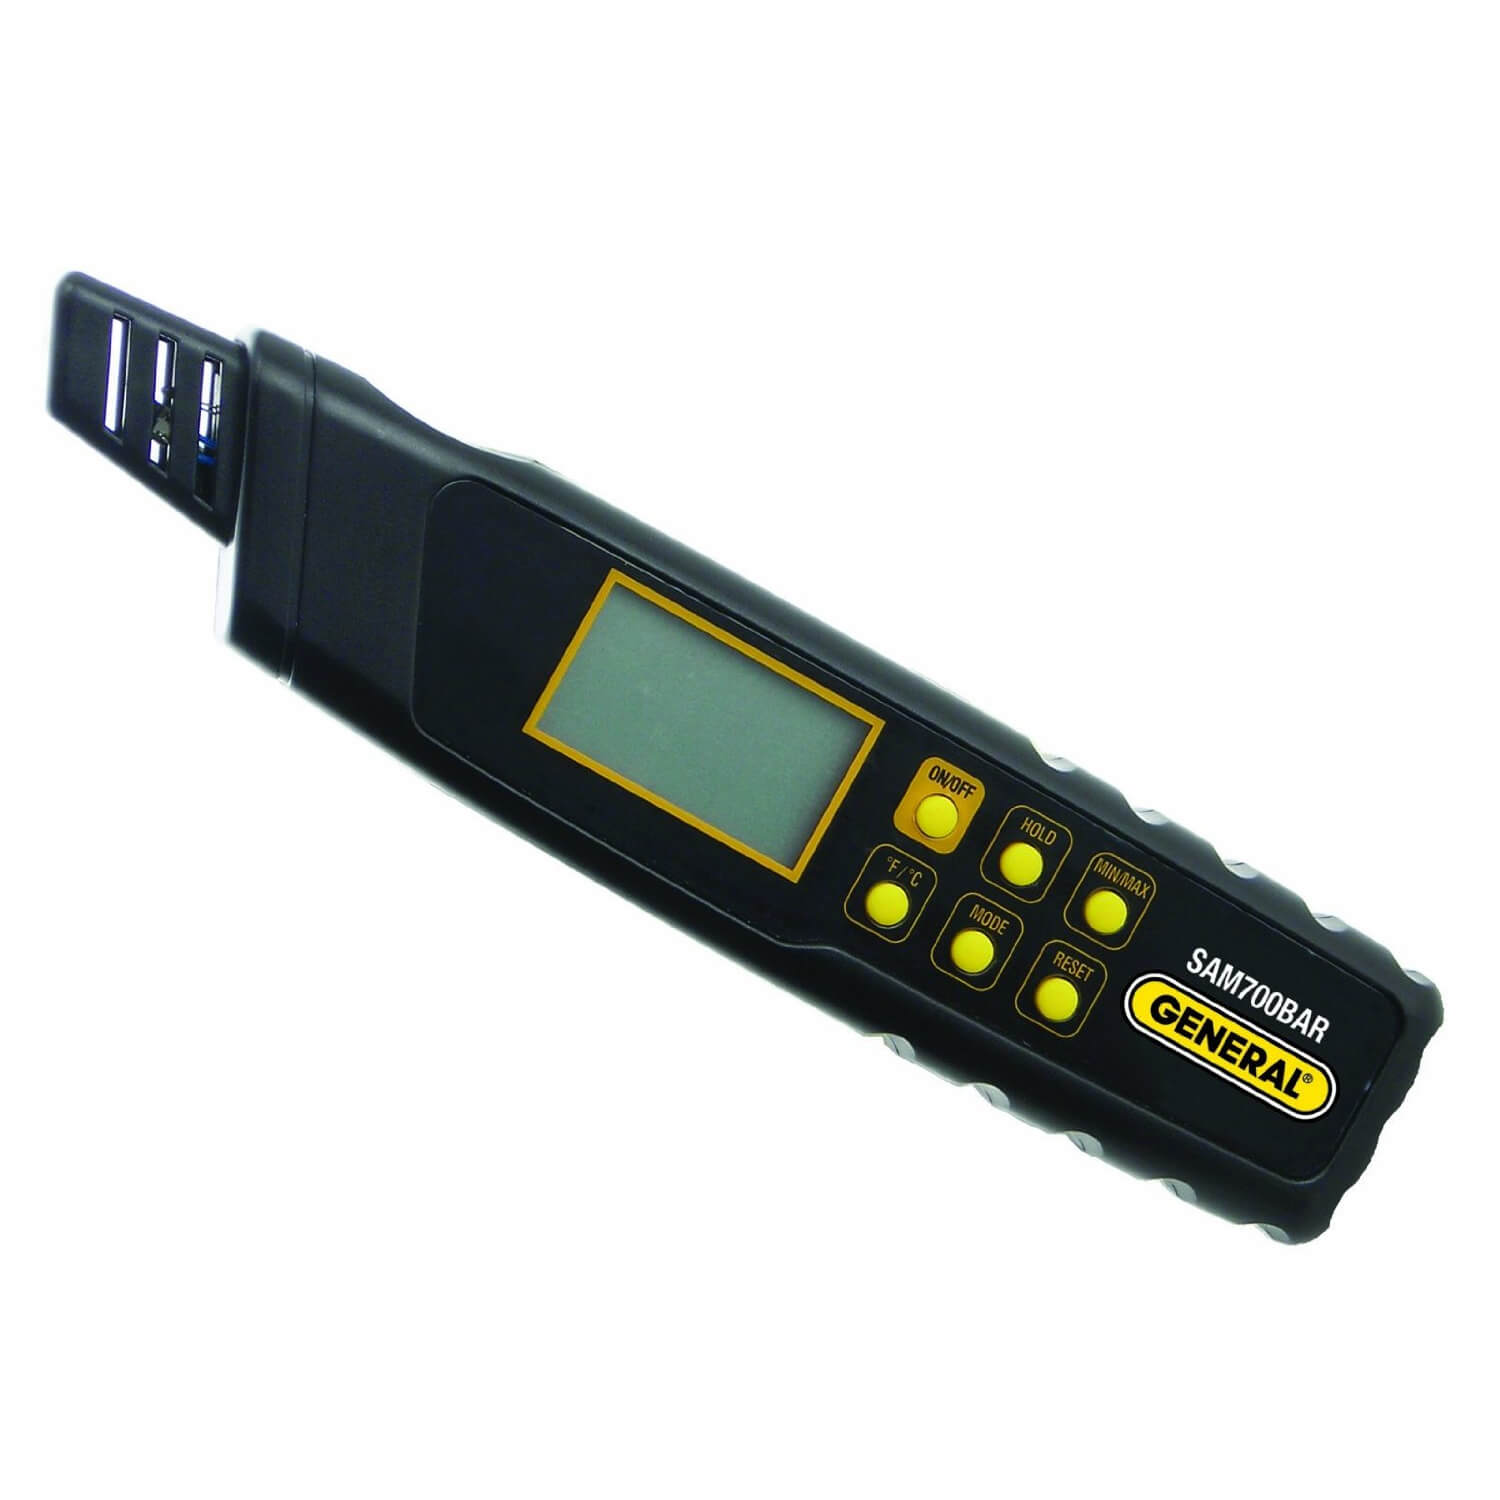 General Tools SAM700BAR Digital Pocket Weatherman Thermo Hygrometer